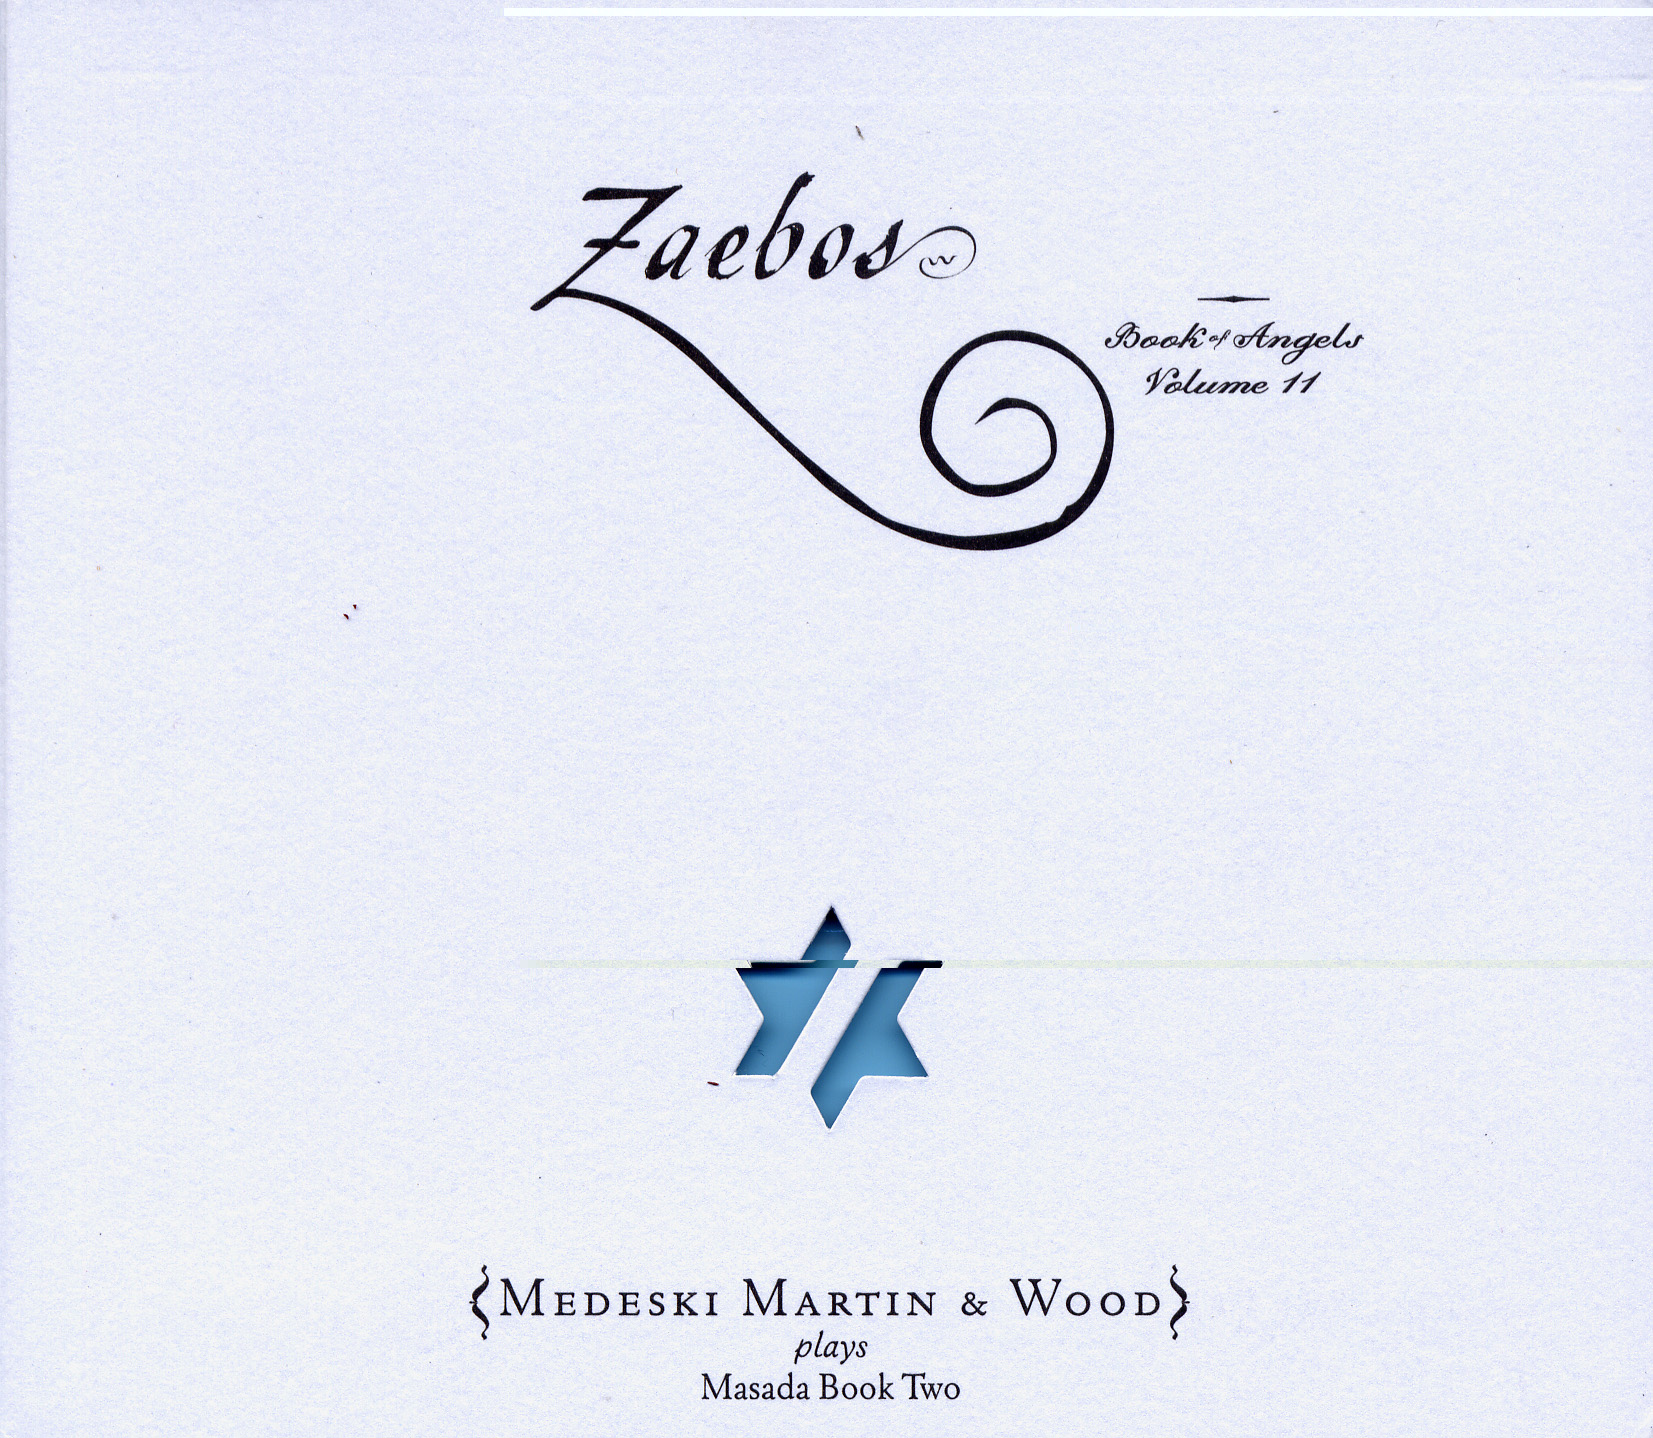 Medeski Martin & Wood - Zaebos  Book of Angels Vol.11.jpg